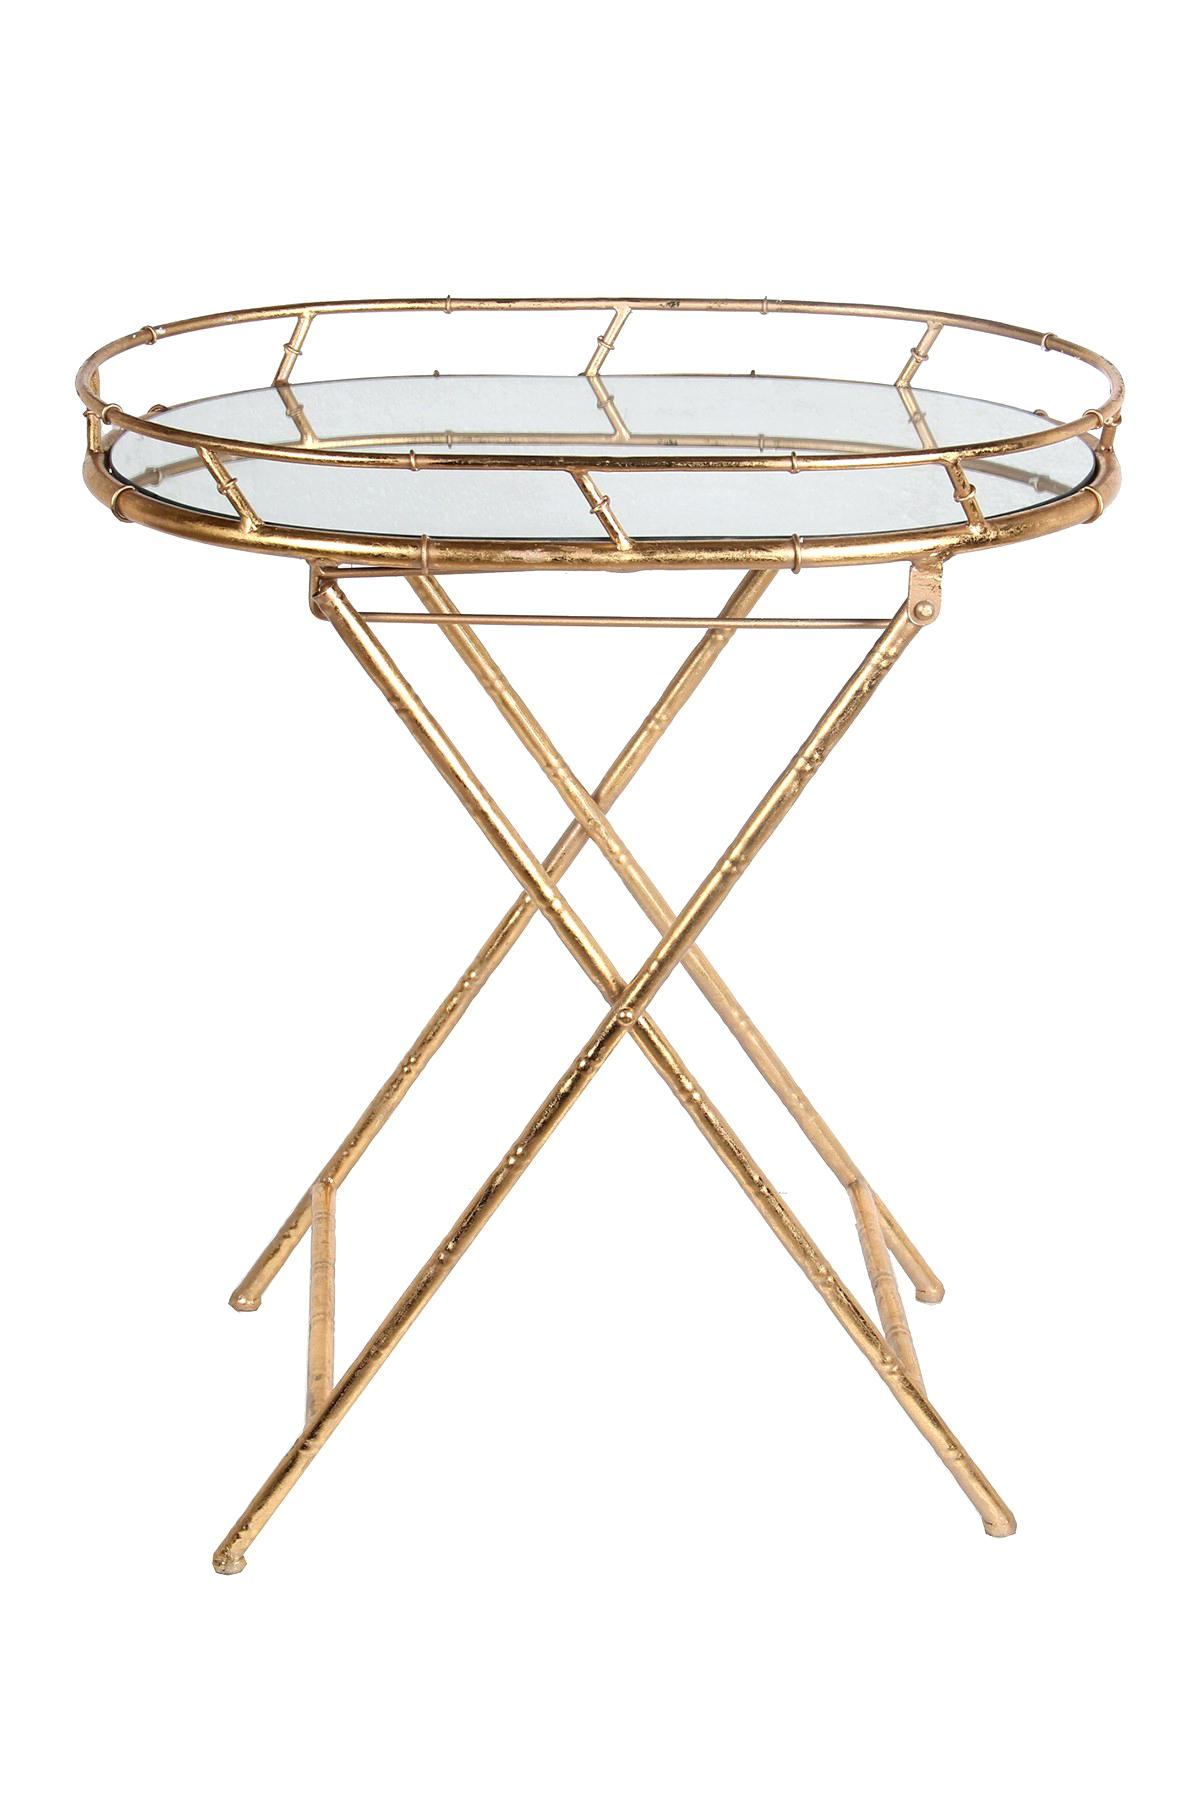 gold tray table round accent tables for bedroom dark wood privilege oval metal queen frame small black bedside console furniture bistro tablecloths end with lamp attached inch